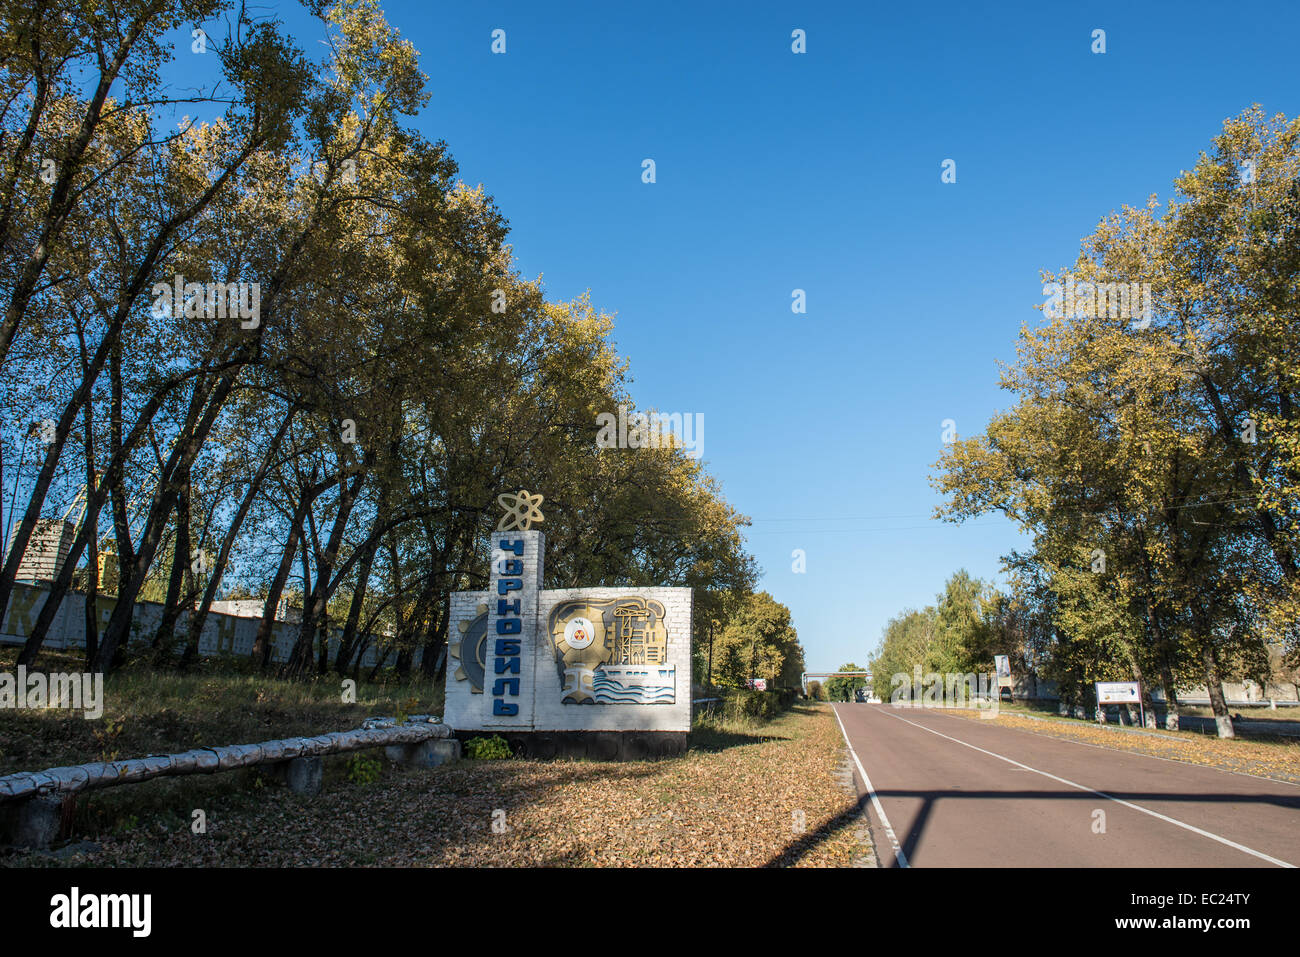 entry sign in Chernobyl, Chernobyl Exclusion Zone, Ukraine - Stock Image